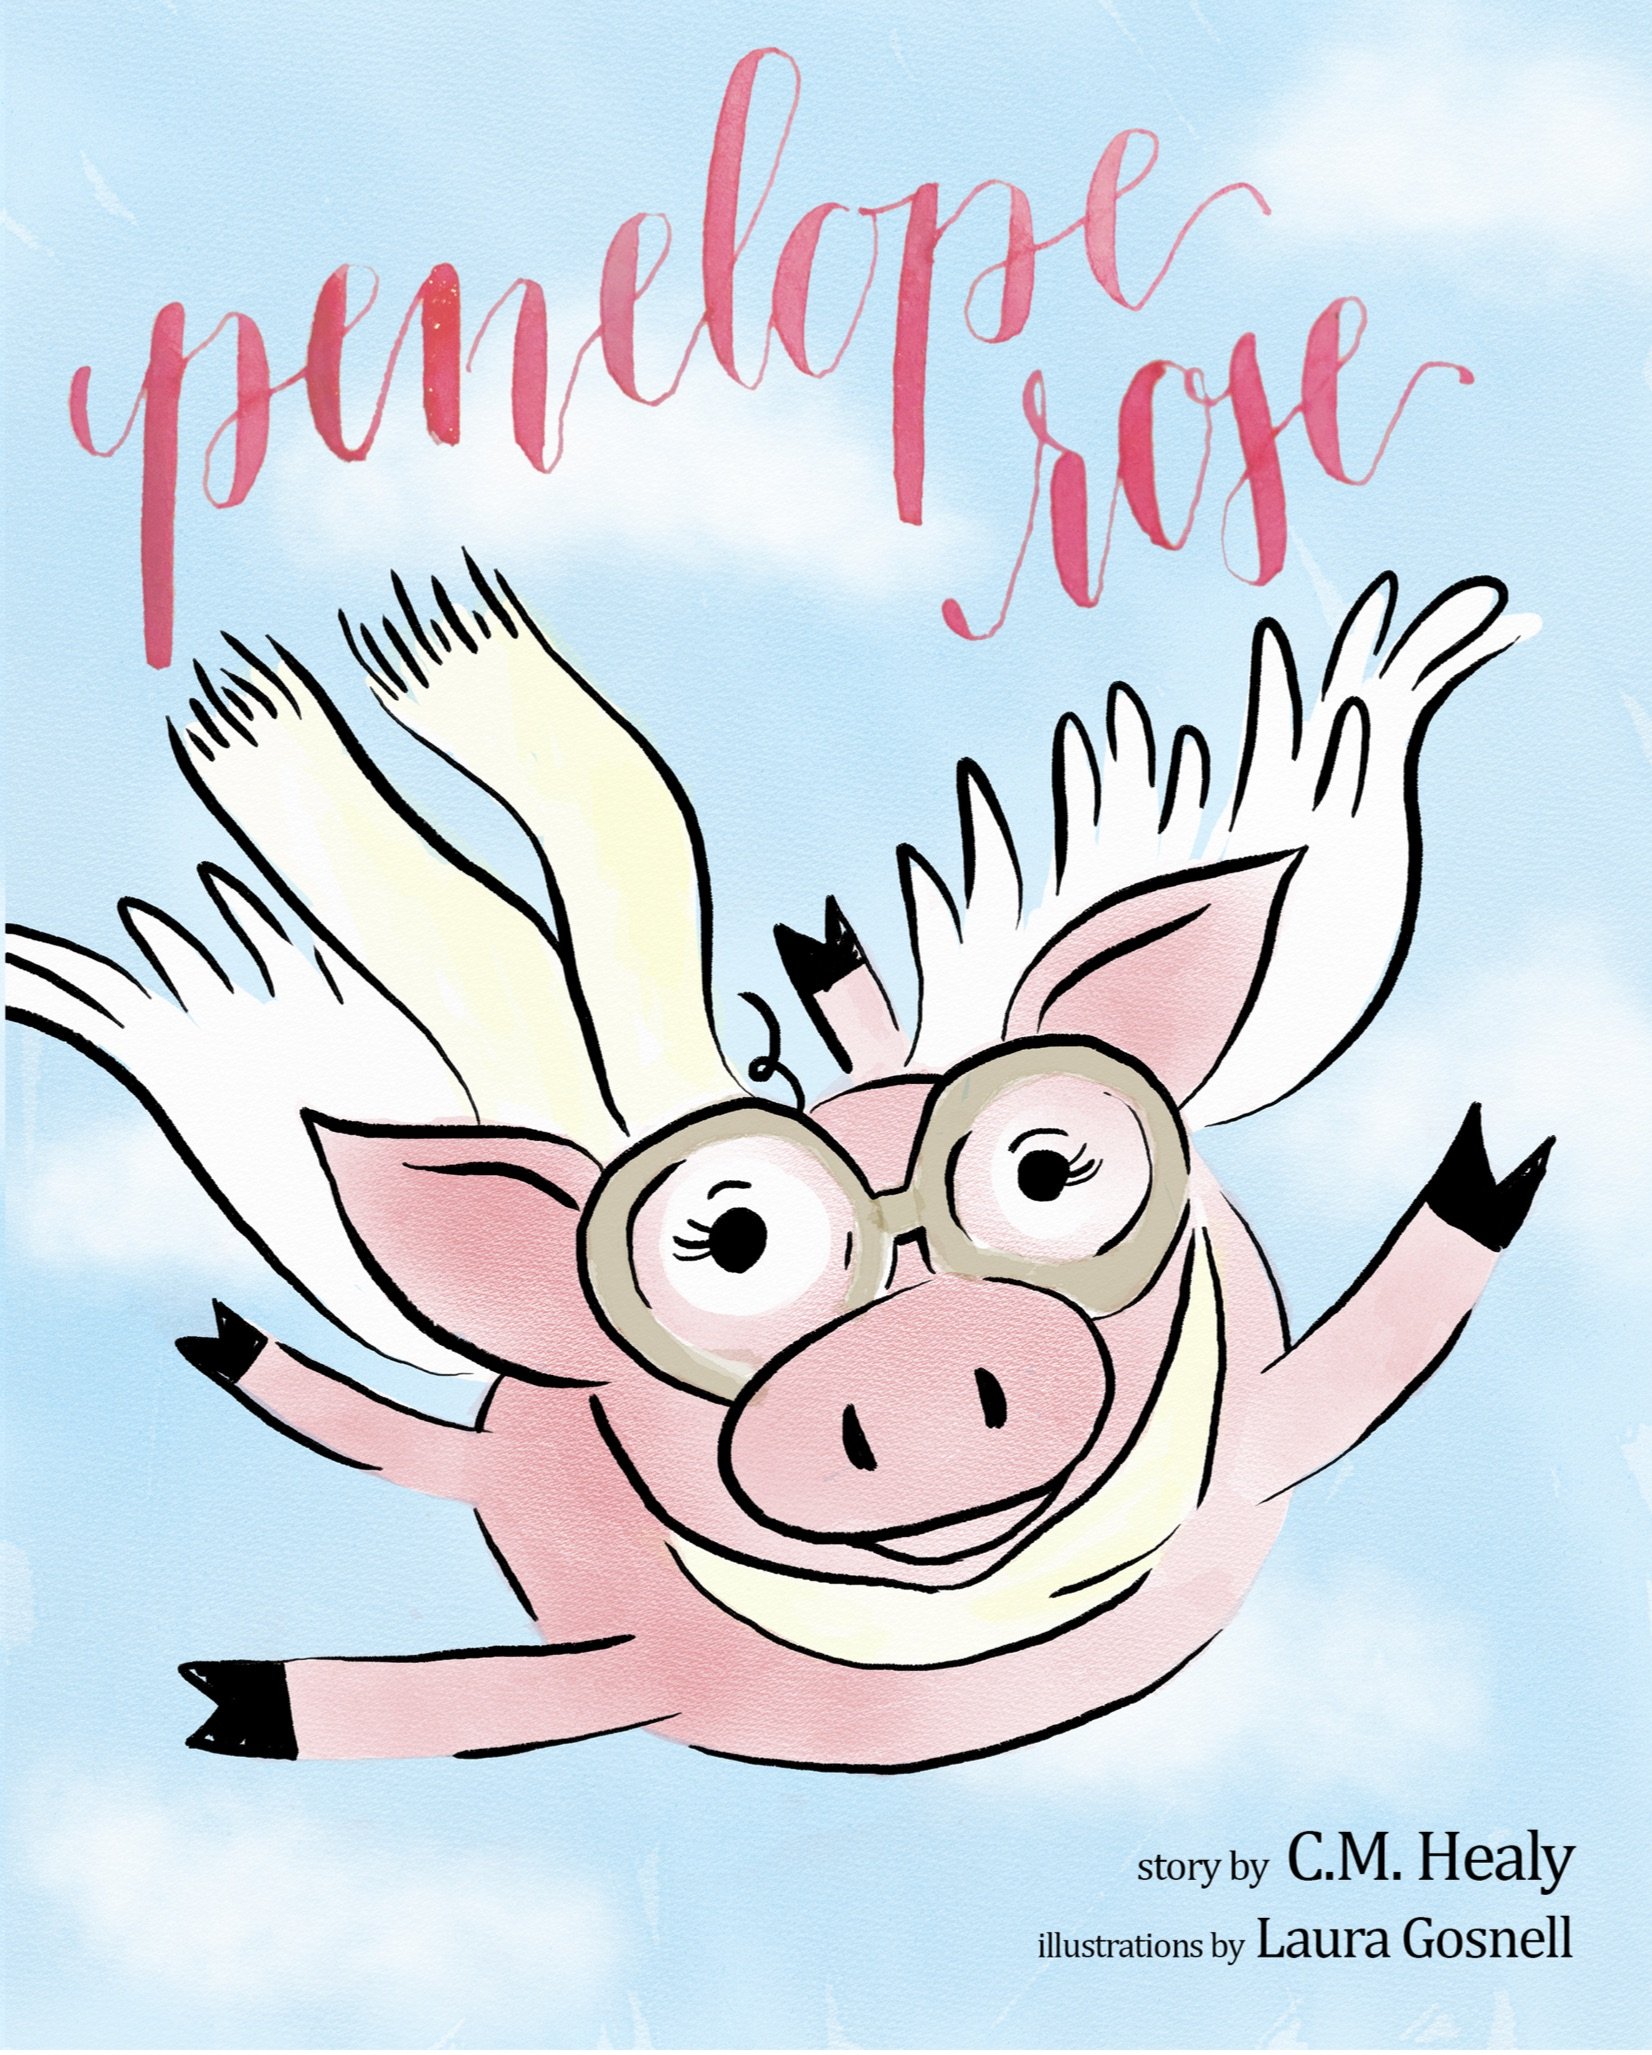 Penelope Rose is peculiar. But that's never bothered her. Not one bit.  Worried parents or teasing friends, Penelope Rose doesn't let anything get her down. She just keeps right on going. And she uses what makes her different to be daring--rising up to be what only she can be--a beautiful, one-of-a-kind flying pig. 6+ years